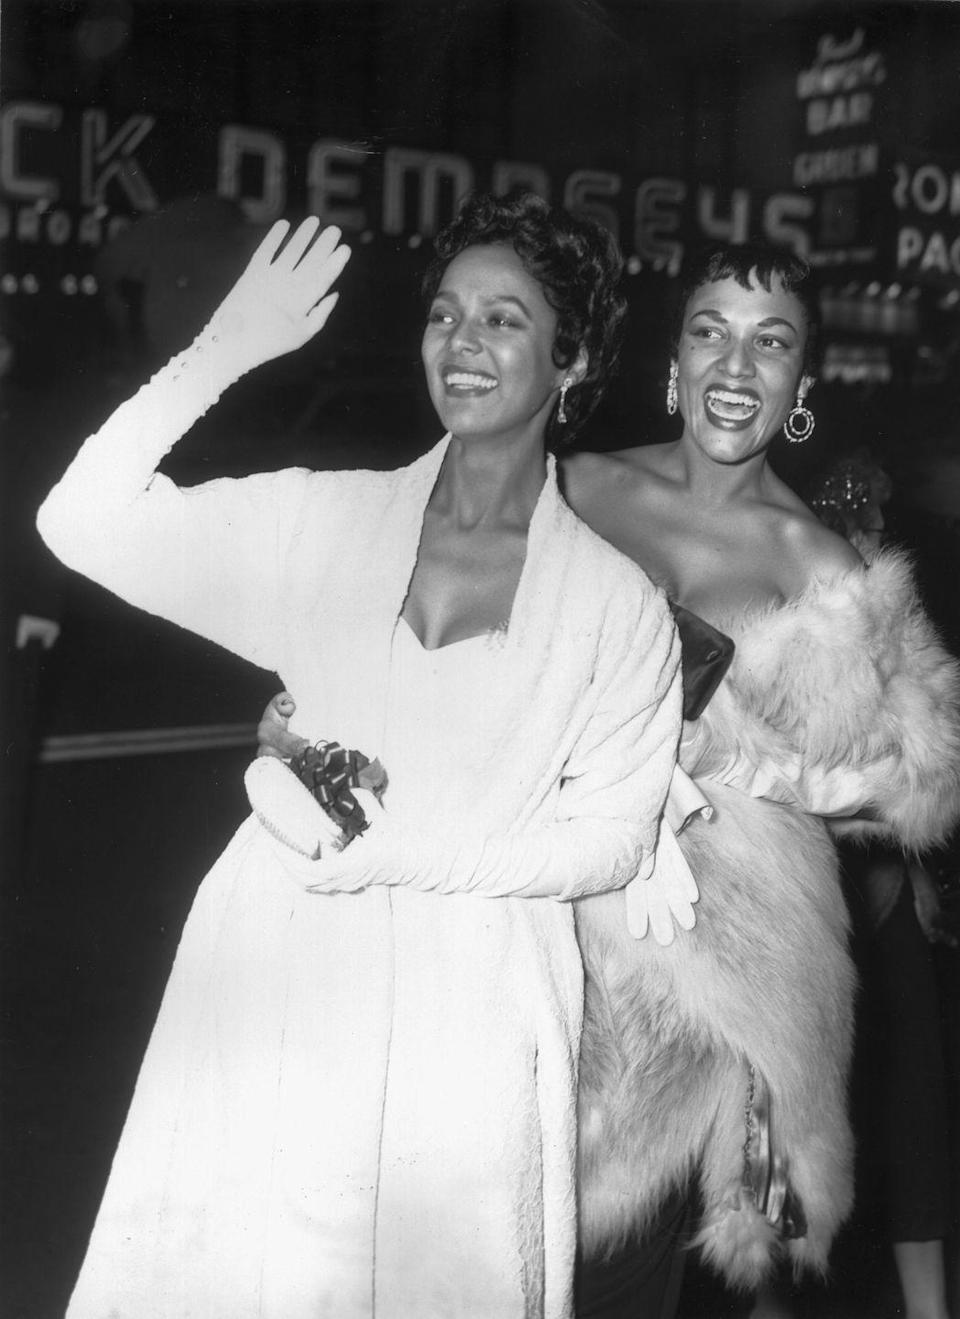 """<p>At a young age, Dorothy and Vivian (right) began performing as a singing act known as the <a href=""""https://www.biography.com/actor/dorothy-dandridge"""" rel=""""nofollow noopener"""" target=""""_blank"""" data-ylk=""""slk:Wonder Children"""" class=""""link rapid-noclick-resp"""">Wonder Children</a>.</p>"""